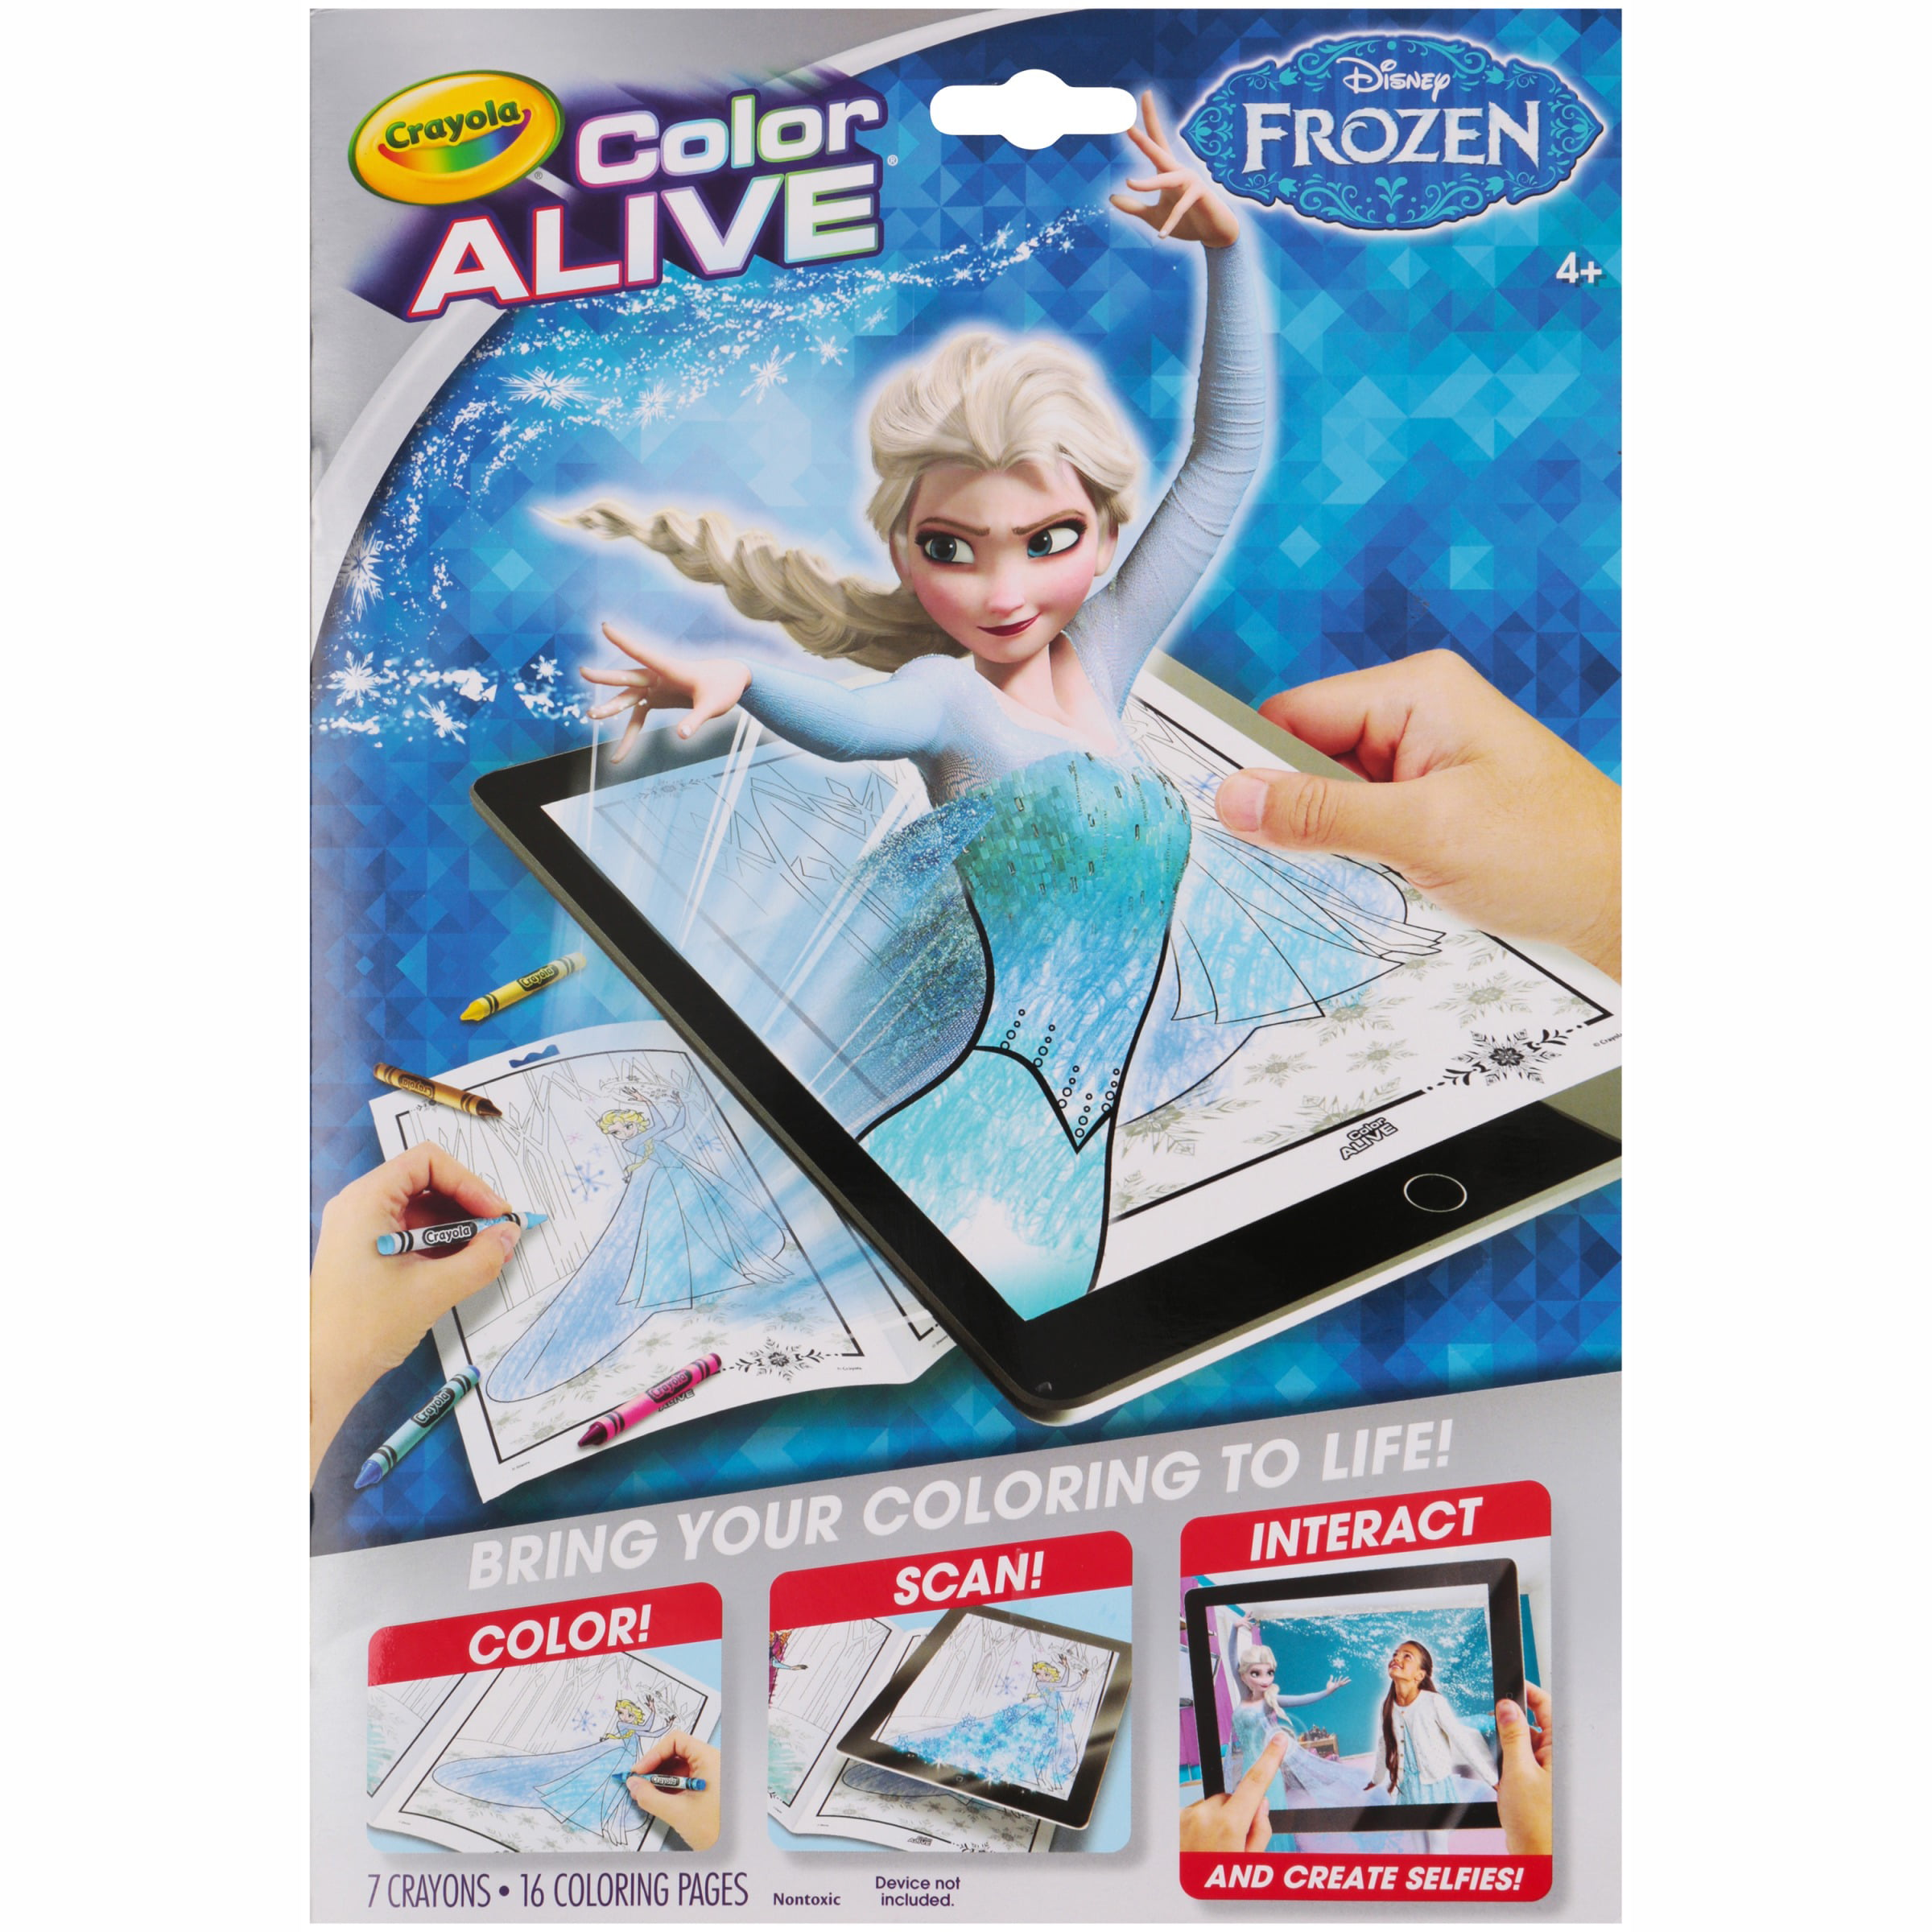 Crayola Color Alive From Disney Frozen, Brings Your ...